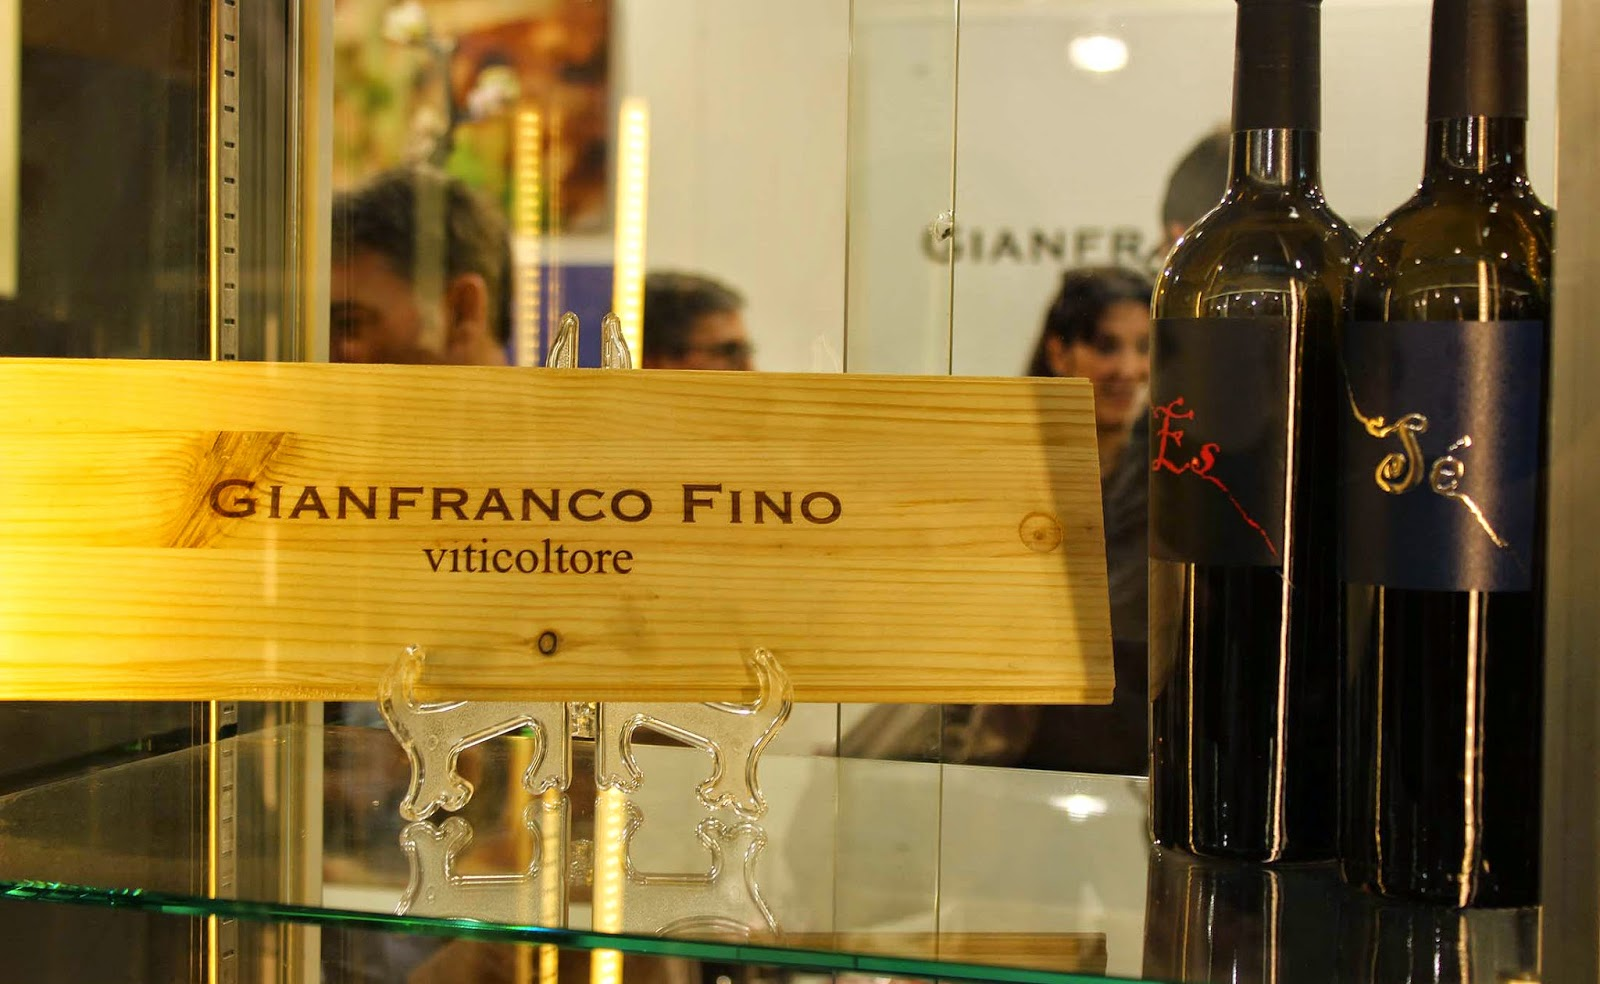 Eniwhere Fashion - Vinitaly 2015 - Gianfranco Fino ES